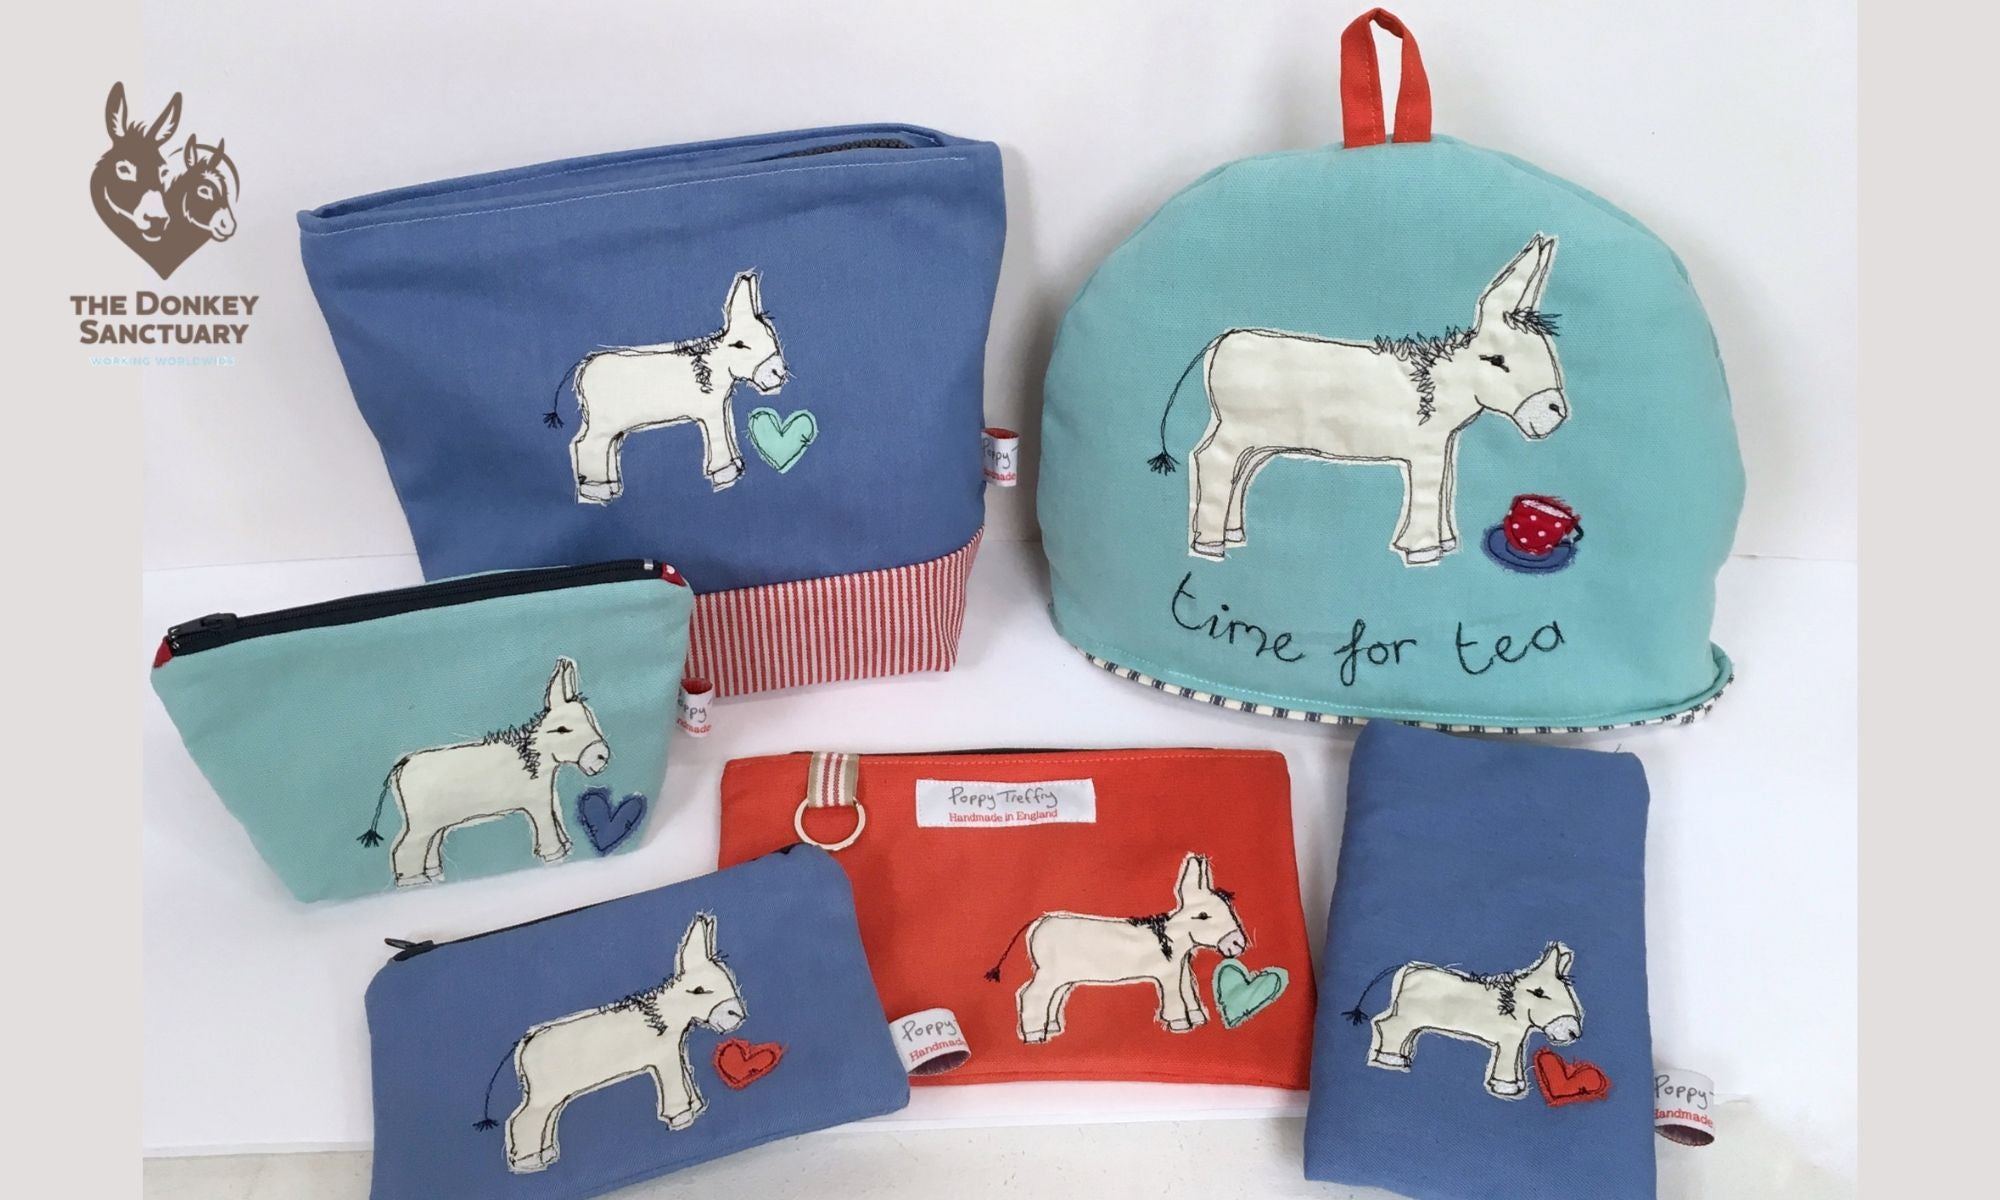 Poppy Treffry bespoke collection for the Donkey Sanctuary